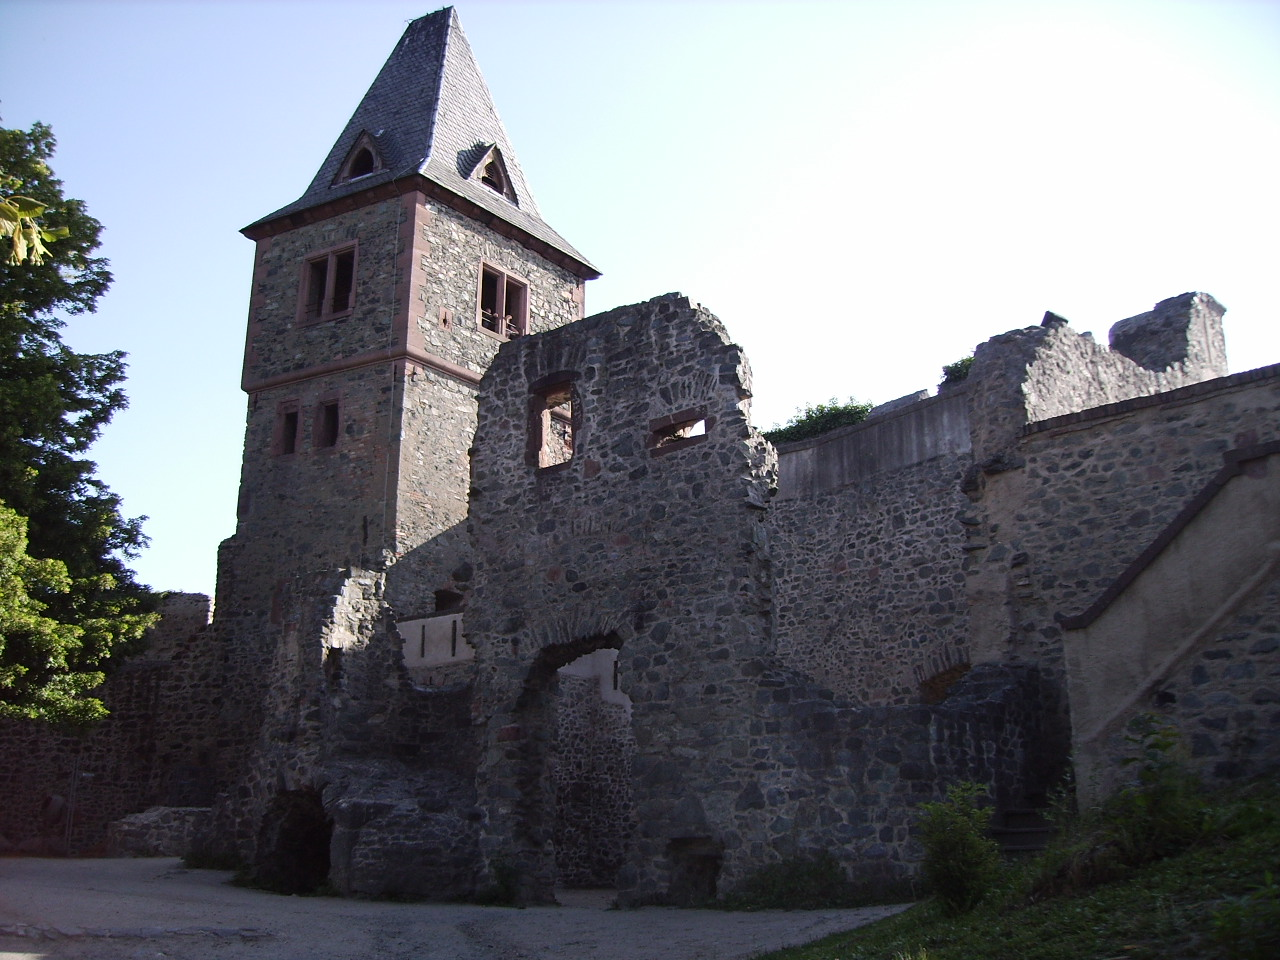 The ruins of the real Frankenstein Castle in Darmstadt, Germany.